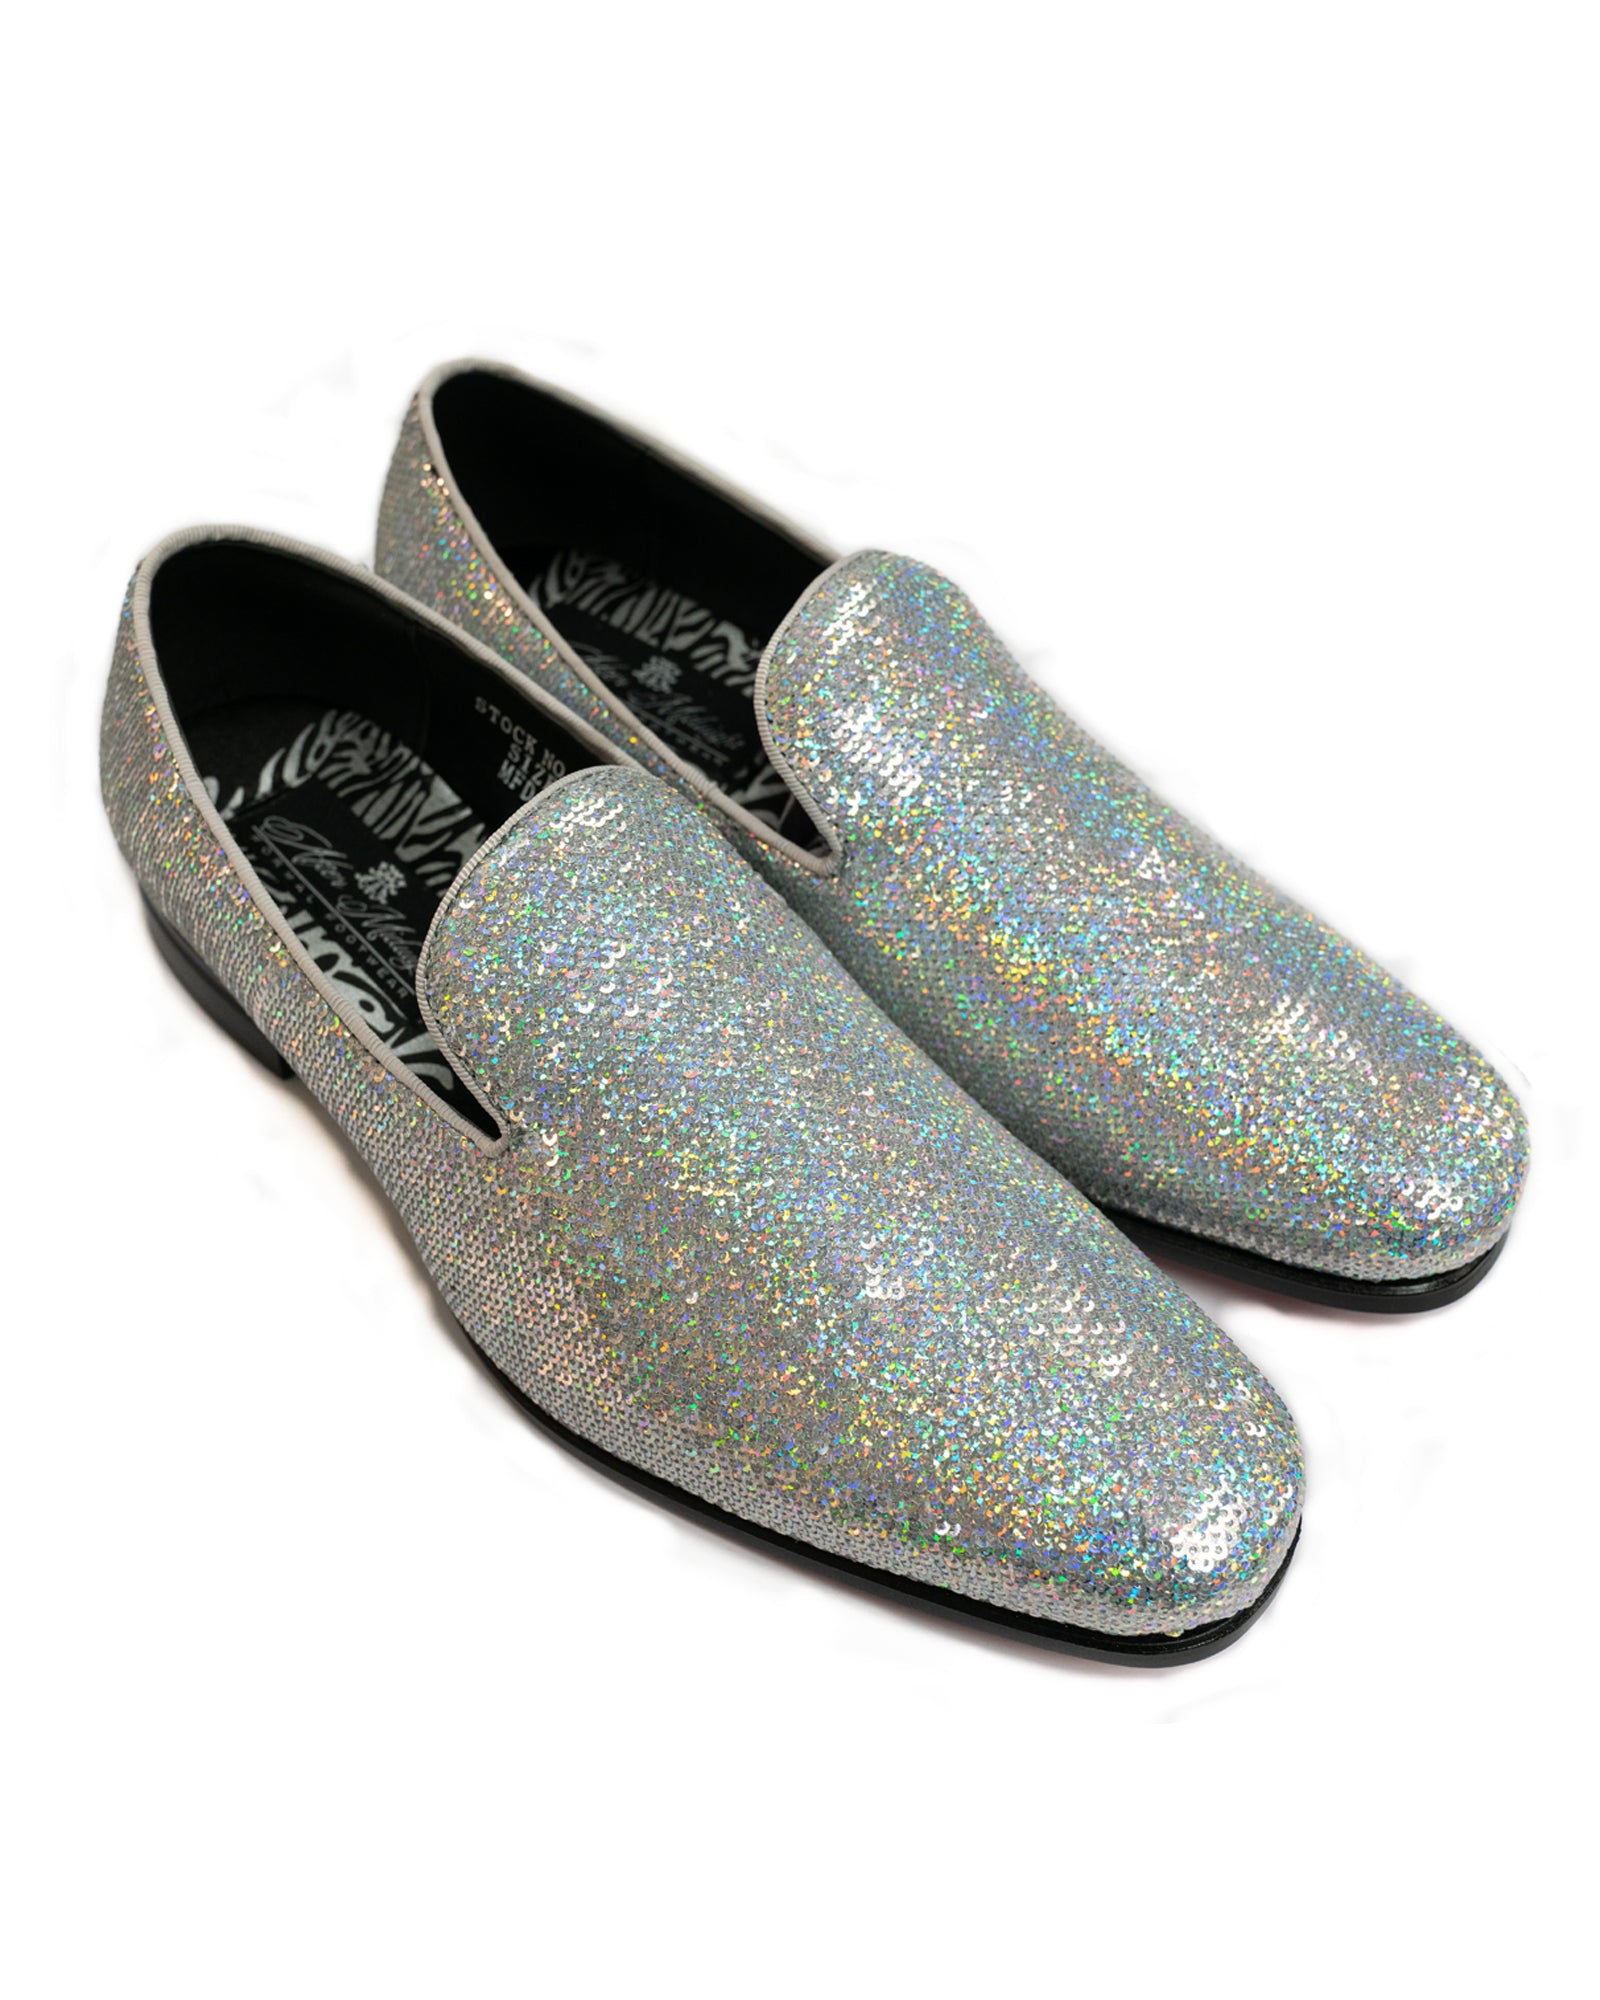 After Midnight Sequin Formal Loafer in Silver Pearl - Rainwater's Men's Clothing and Tuxedo Rental